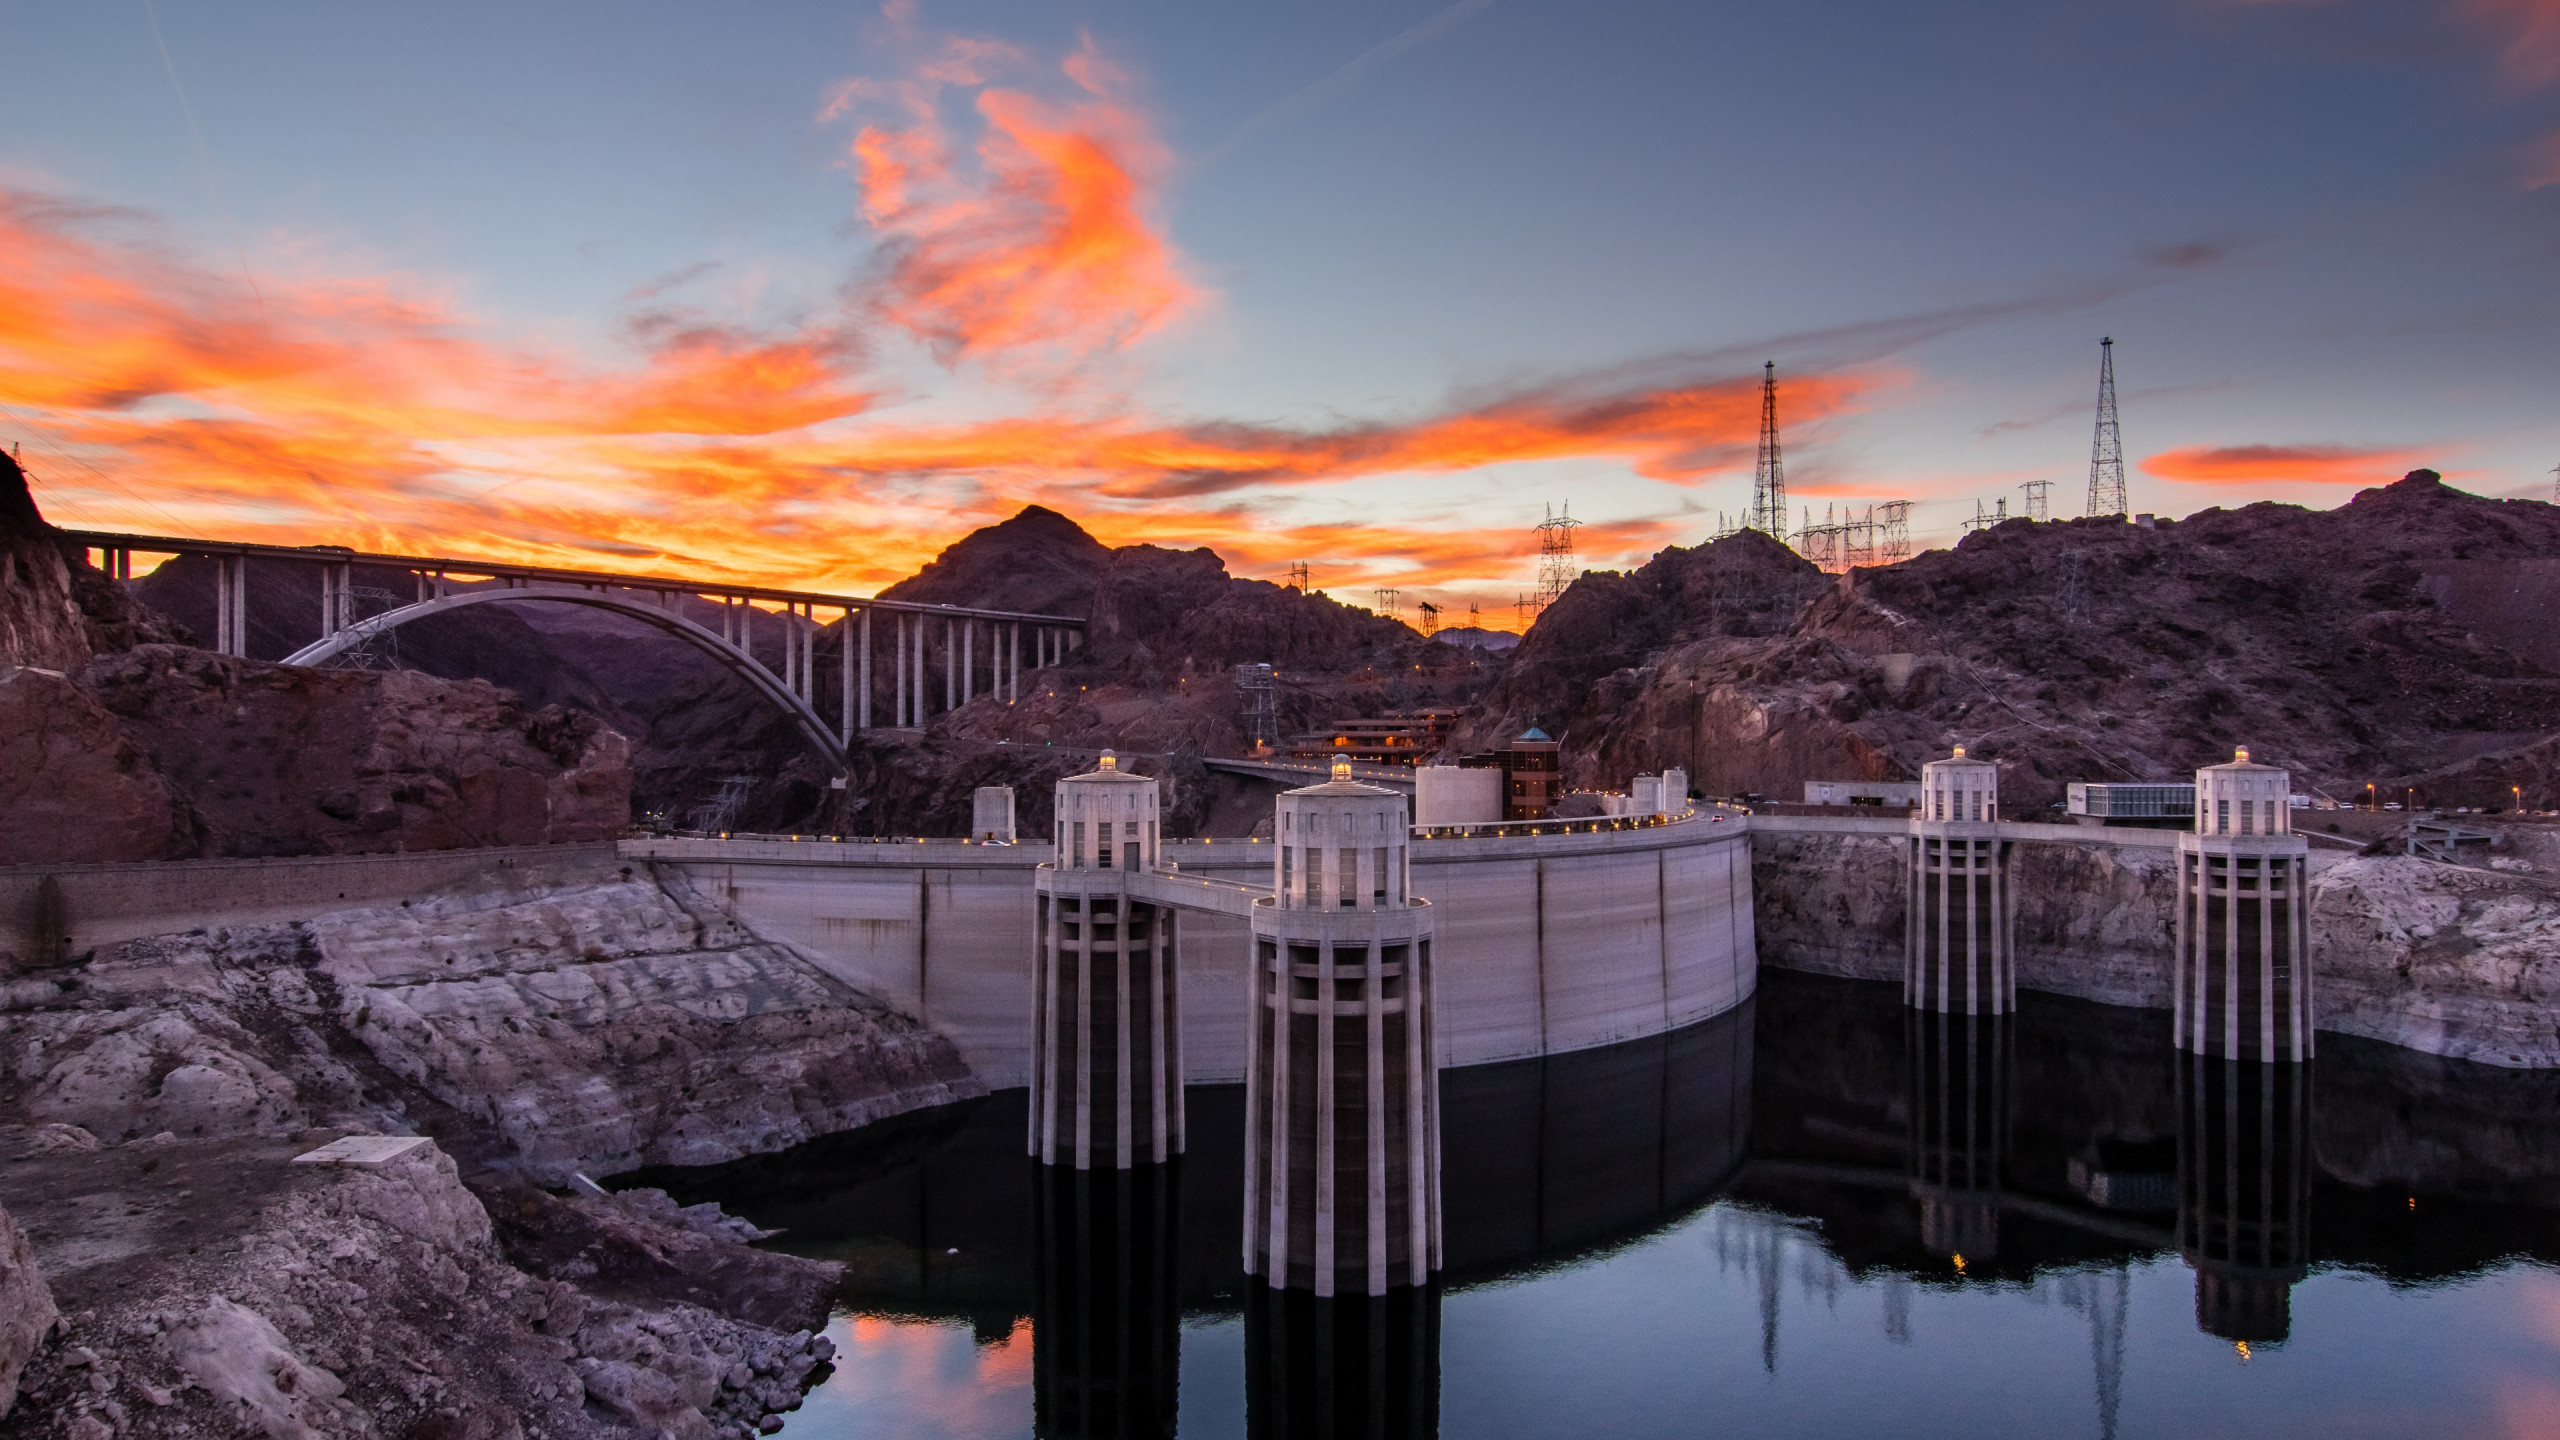 Hoover Dam at sunset wallpaper 2560x1440